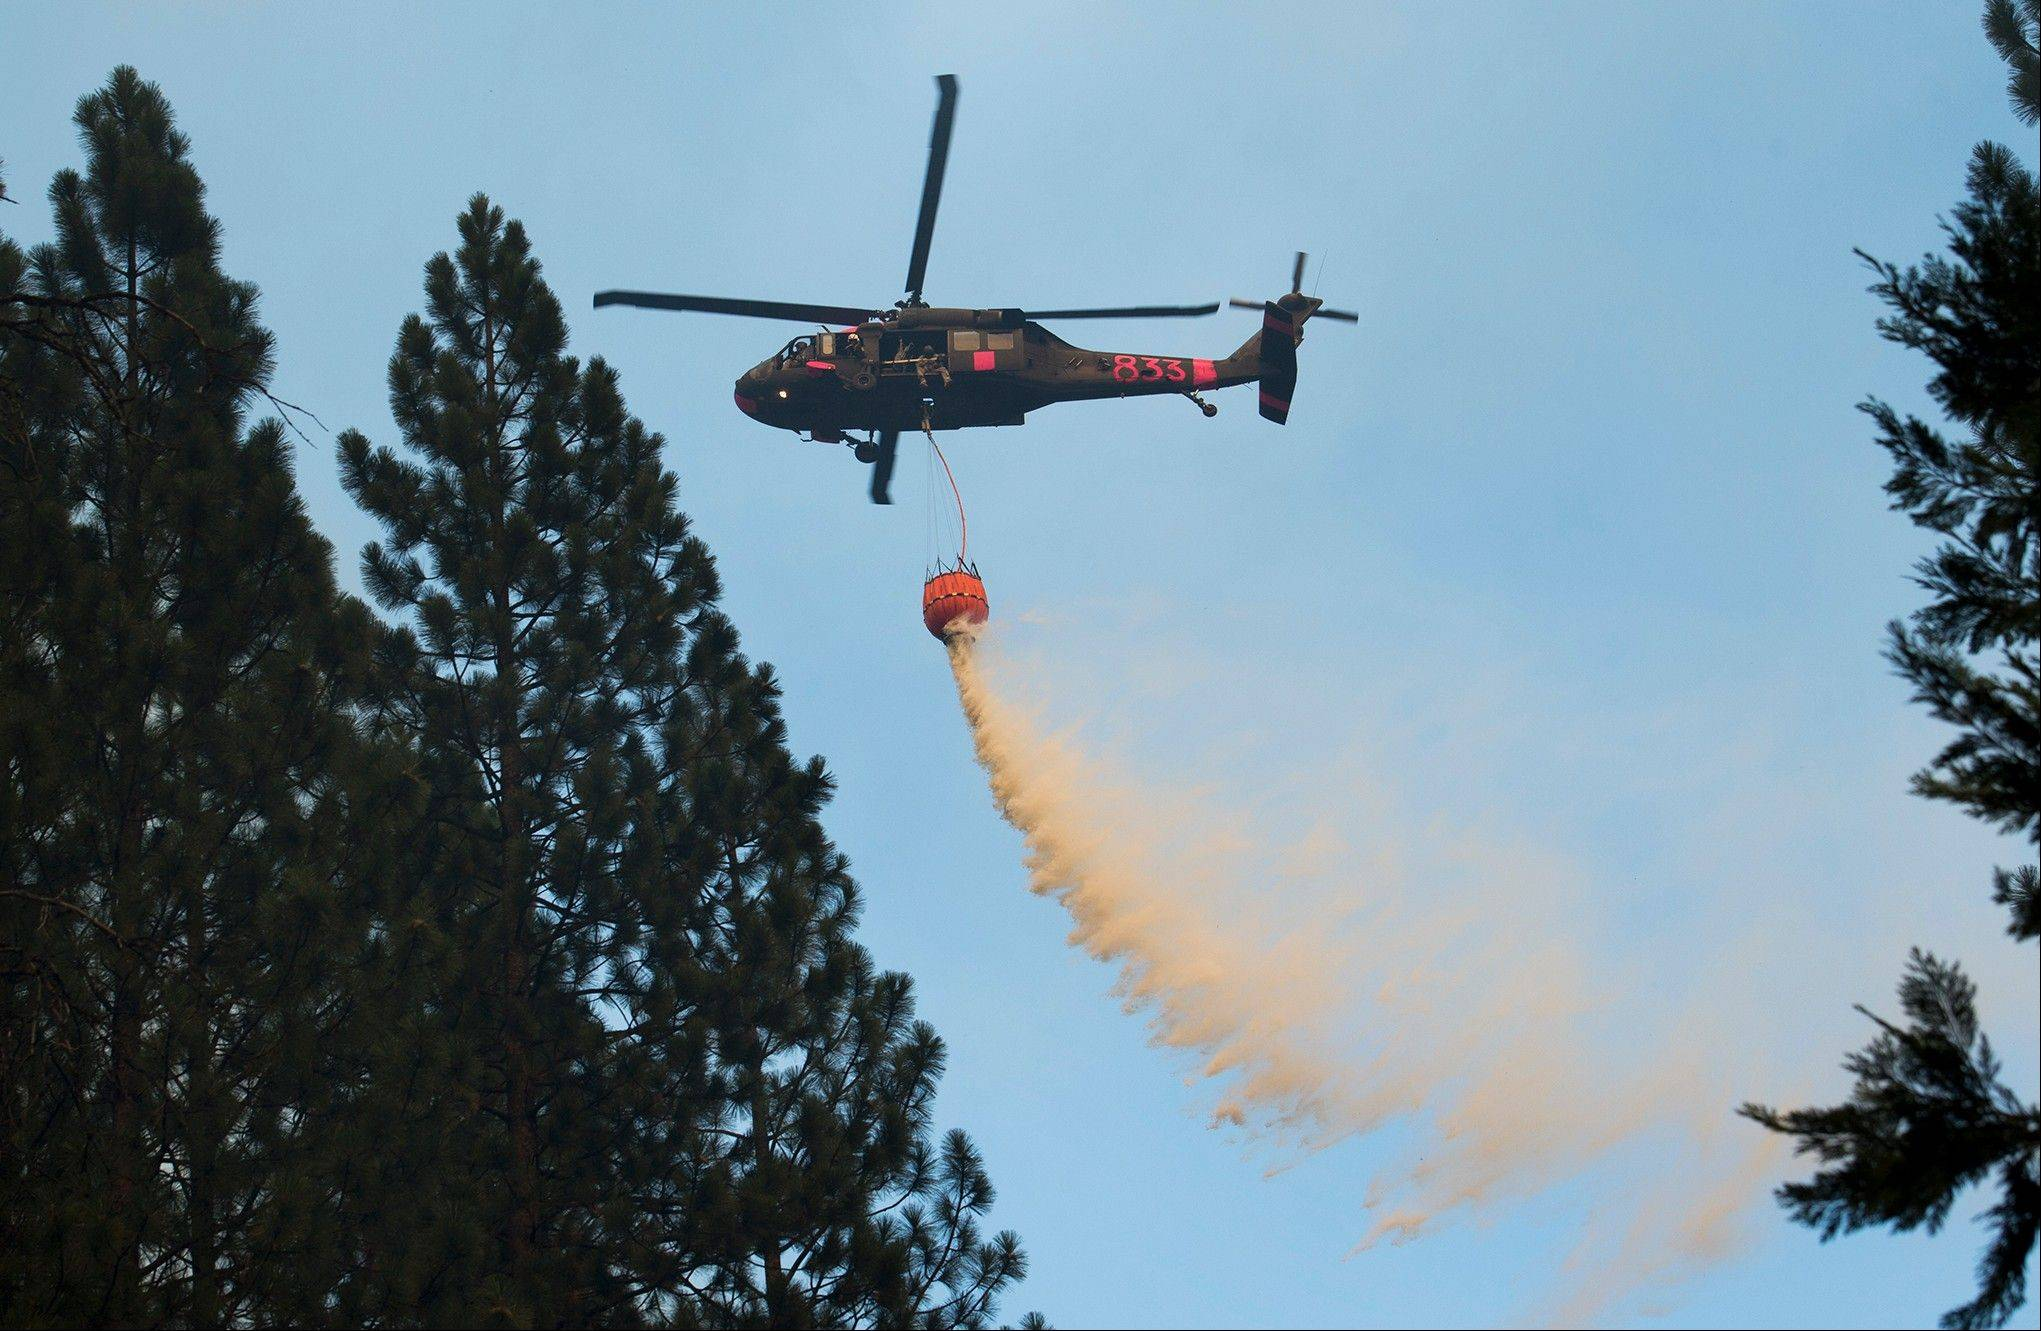 A helicopter makes an aerial water drop over the Rim Fire in the Stanislaus National Forest Thursday, Aug. 22, 2013. A wildfire outside Yosemite National Park nearly quadrupled in size Thursday, prompting officers to warn residents in a gated community to evacuate their homes and leading scores of tourists to leave the area during peak season.